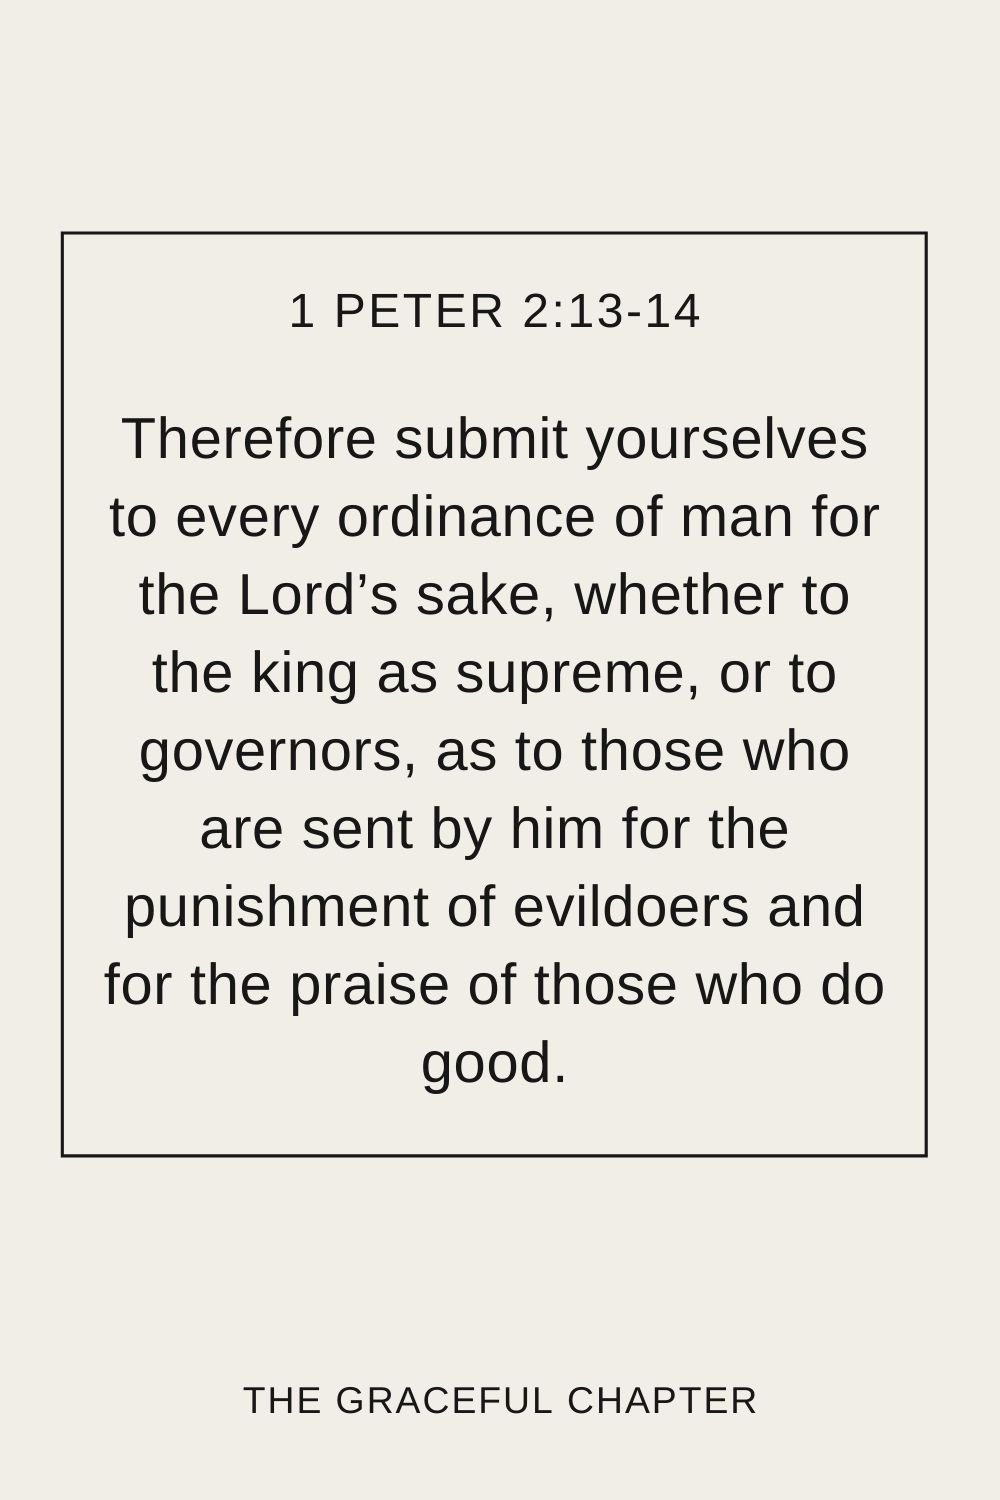 Therefore submit yourselves to every ordinance of man for the Lord's sake, whether to the king as supreme, or to governors, as to those who are sent by him for the punishment of evildoers and for the praise of those who do good. 1 Peter 2:13-14